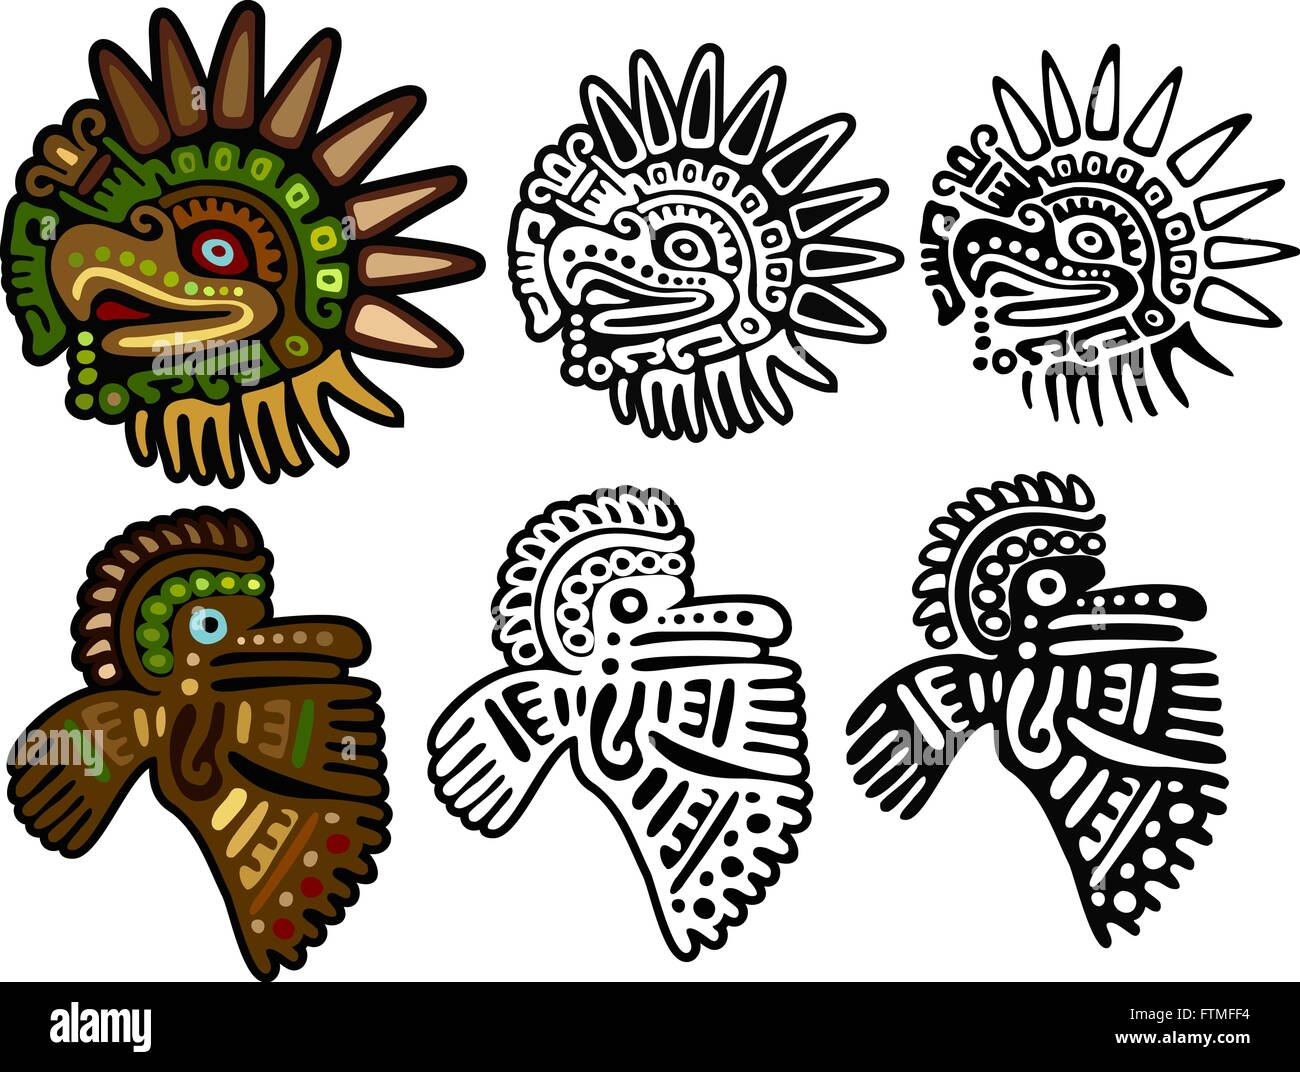 Two different eagle glyphs, in three versions each - Stock Image